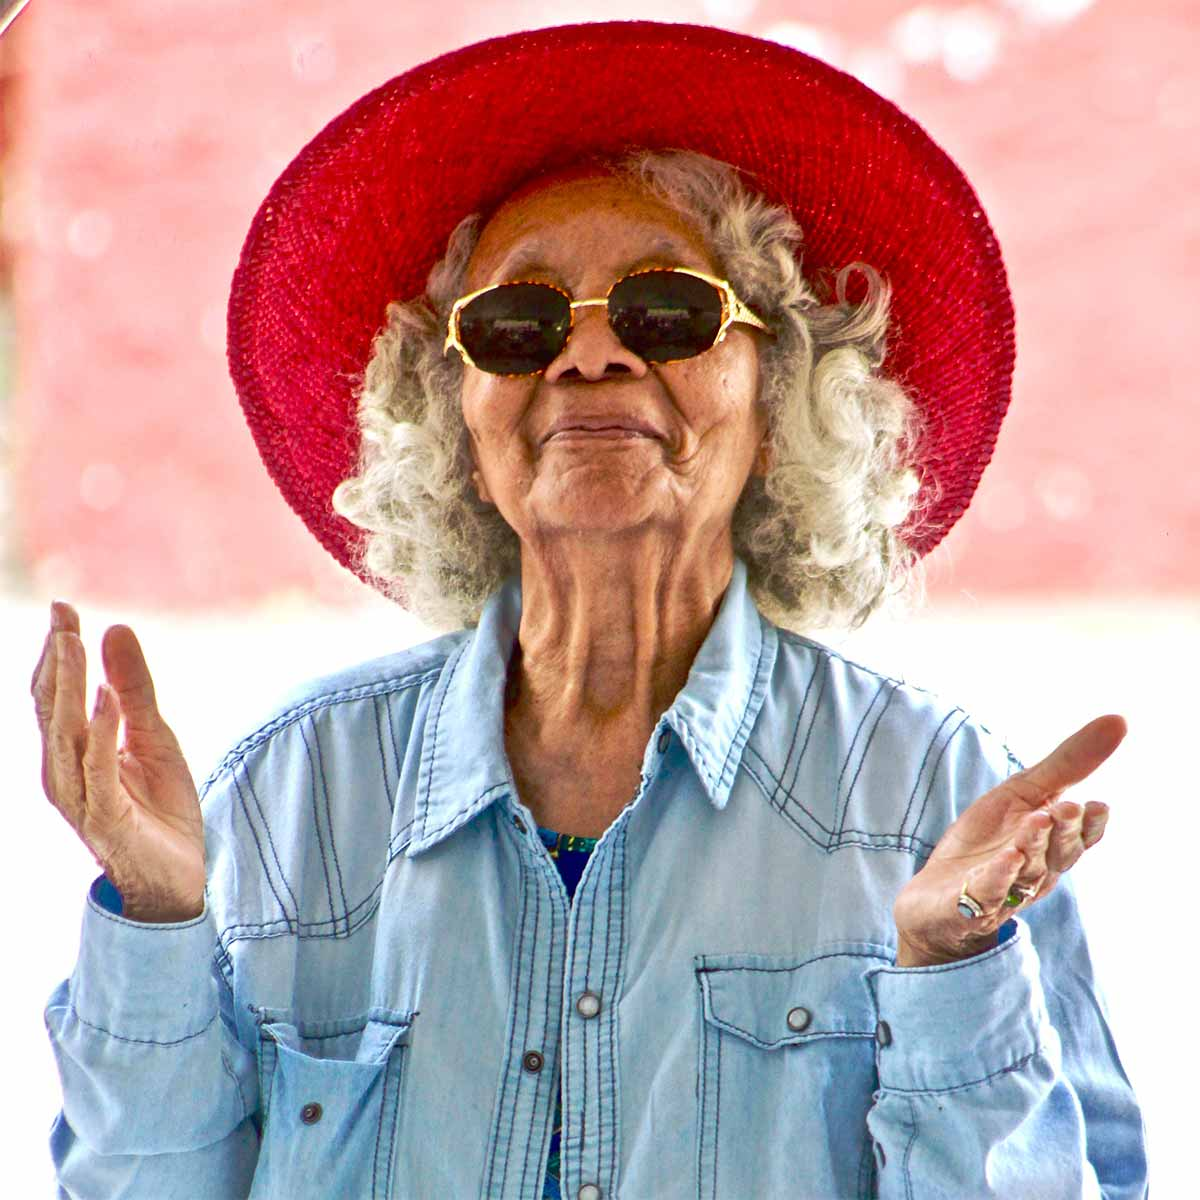 An older adult woman with a bright red hat and sunglasses is smiling